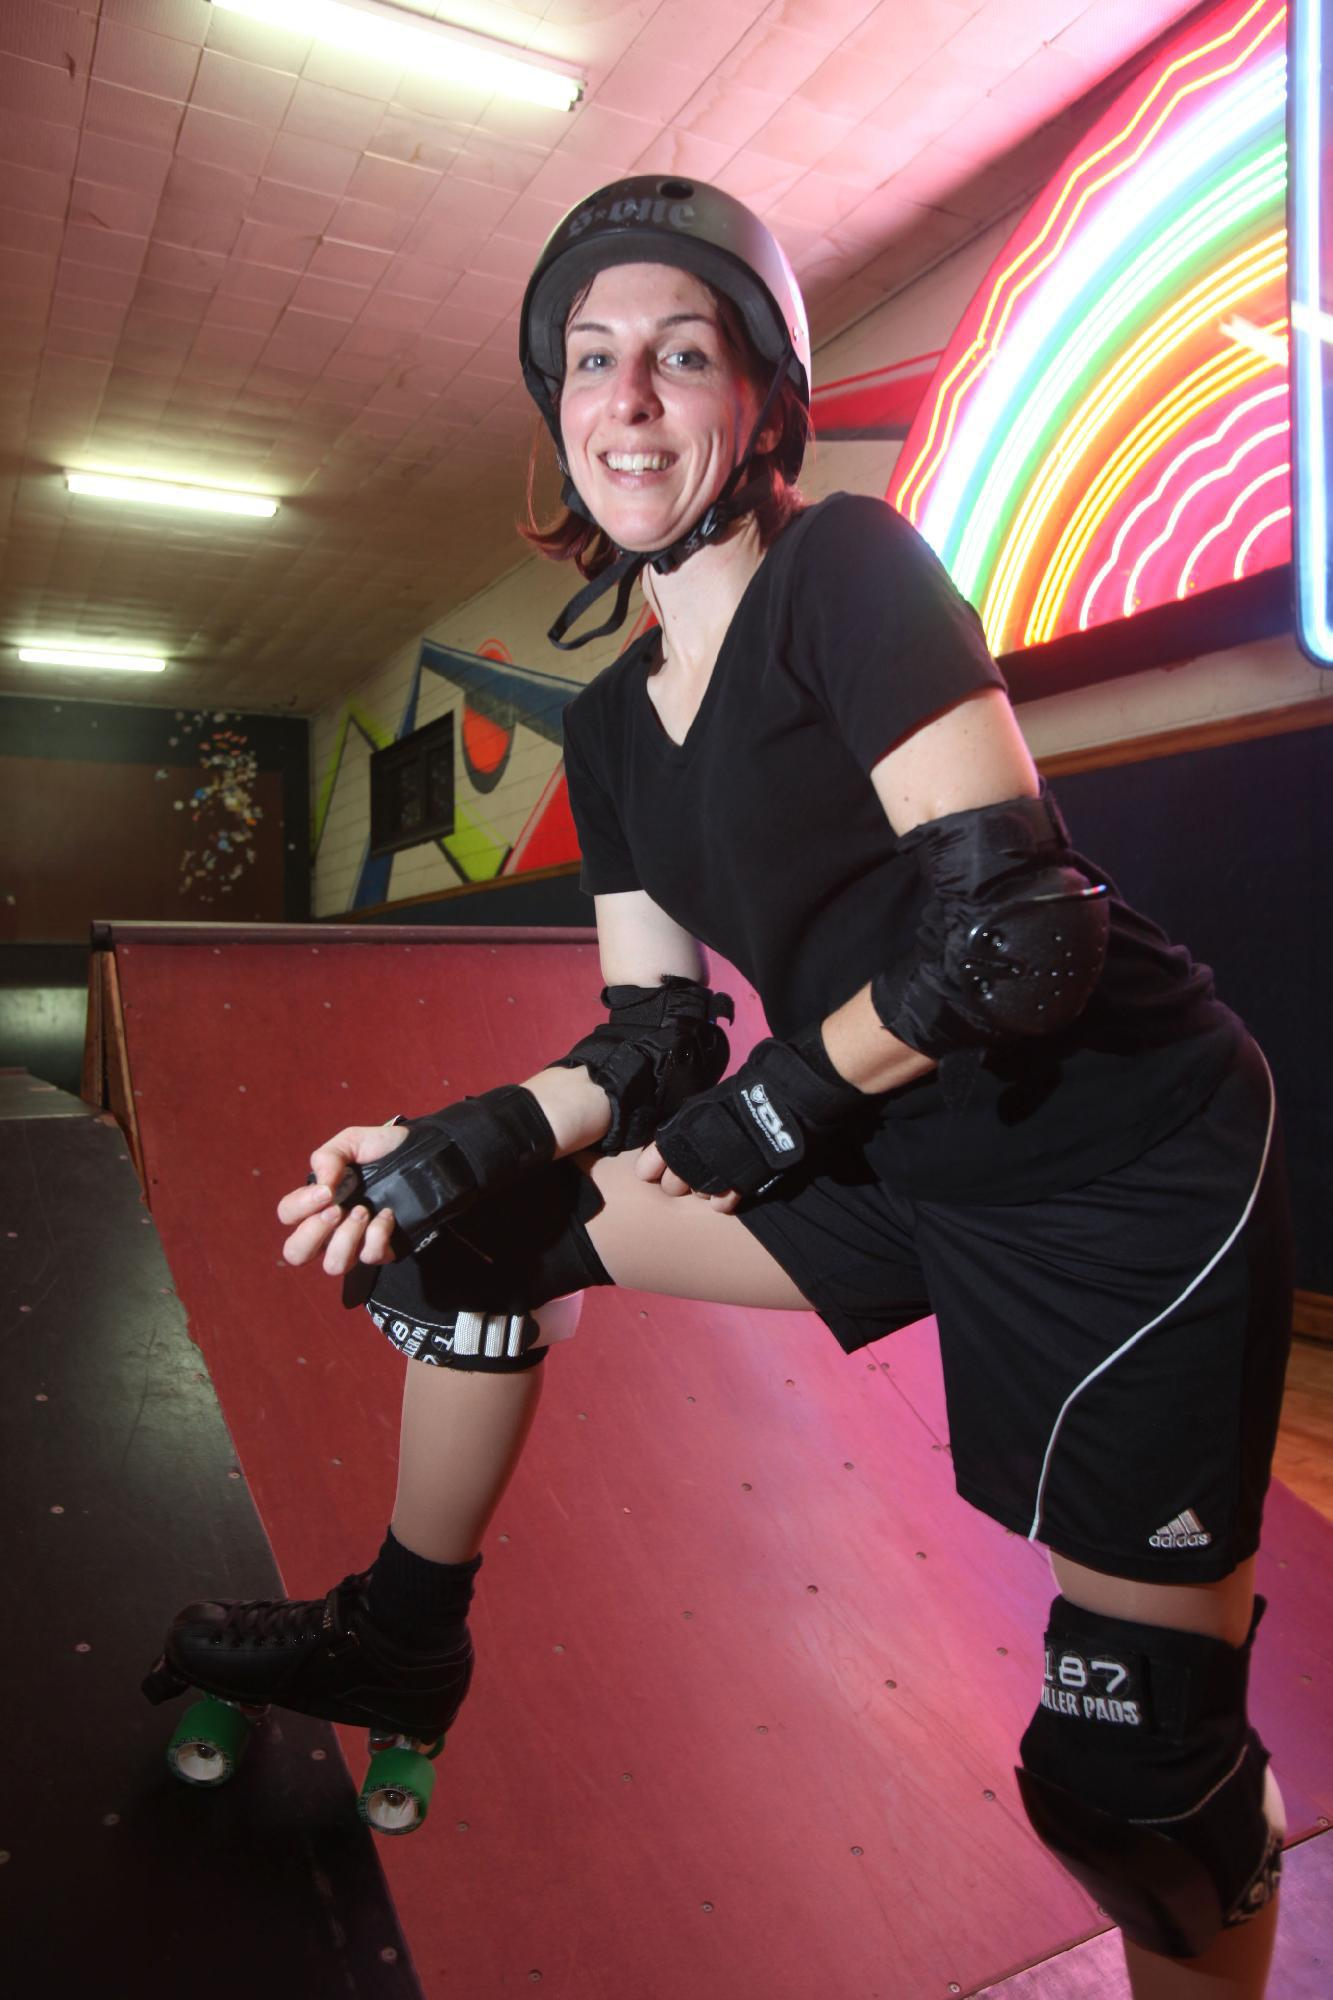 Roller skating rink lafayette in - Rainbow Rink In North Tonawanda Is Family Owned And Offers Lots Of Skate Time Robert Kirkham Buffalo News File Photo